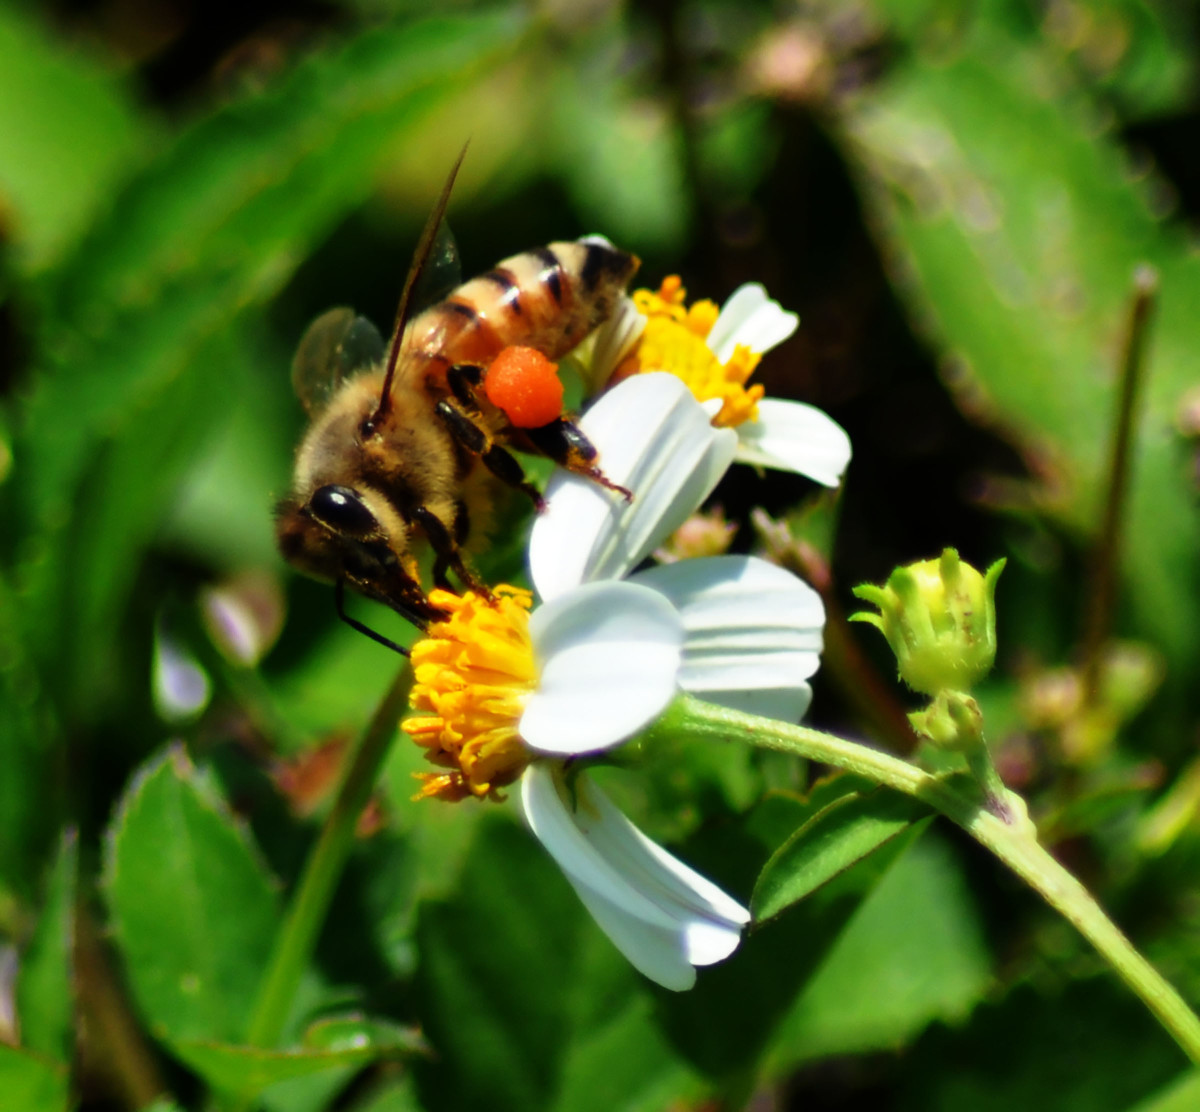 Female Honeybee Gathering Pollen